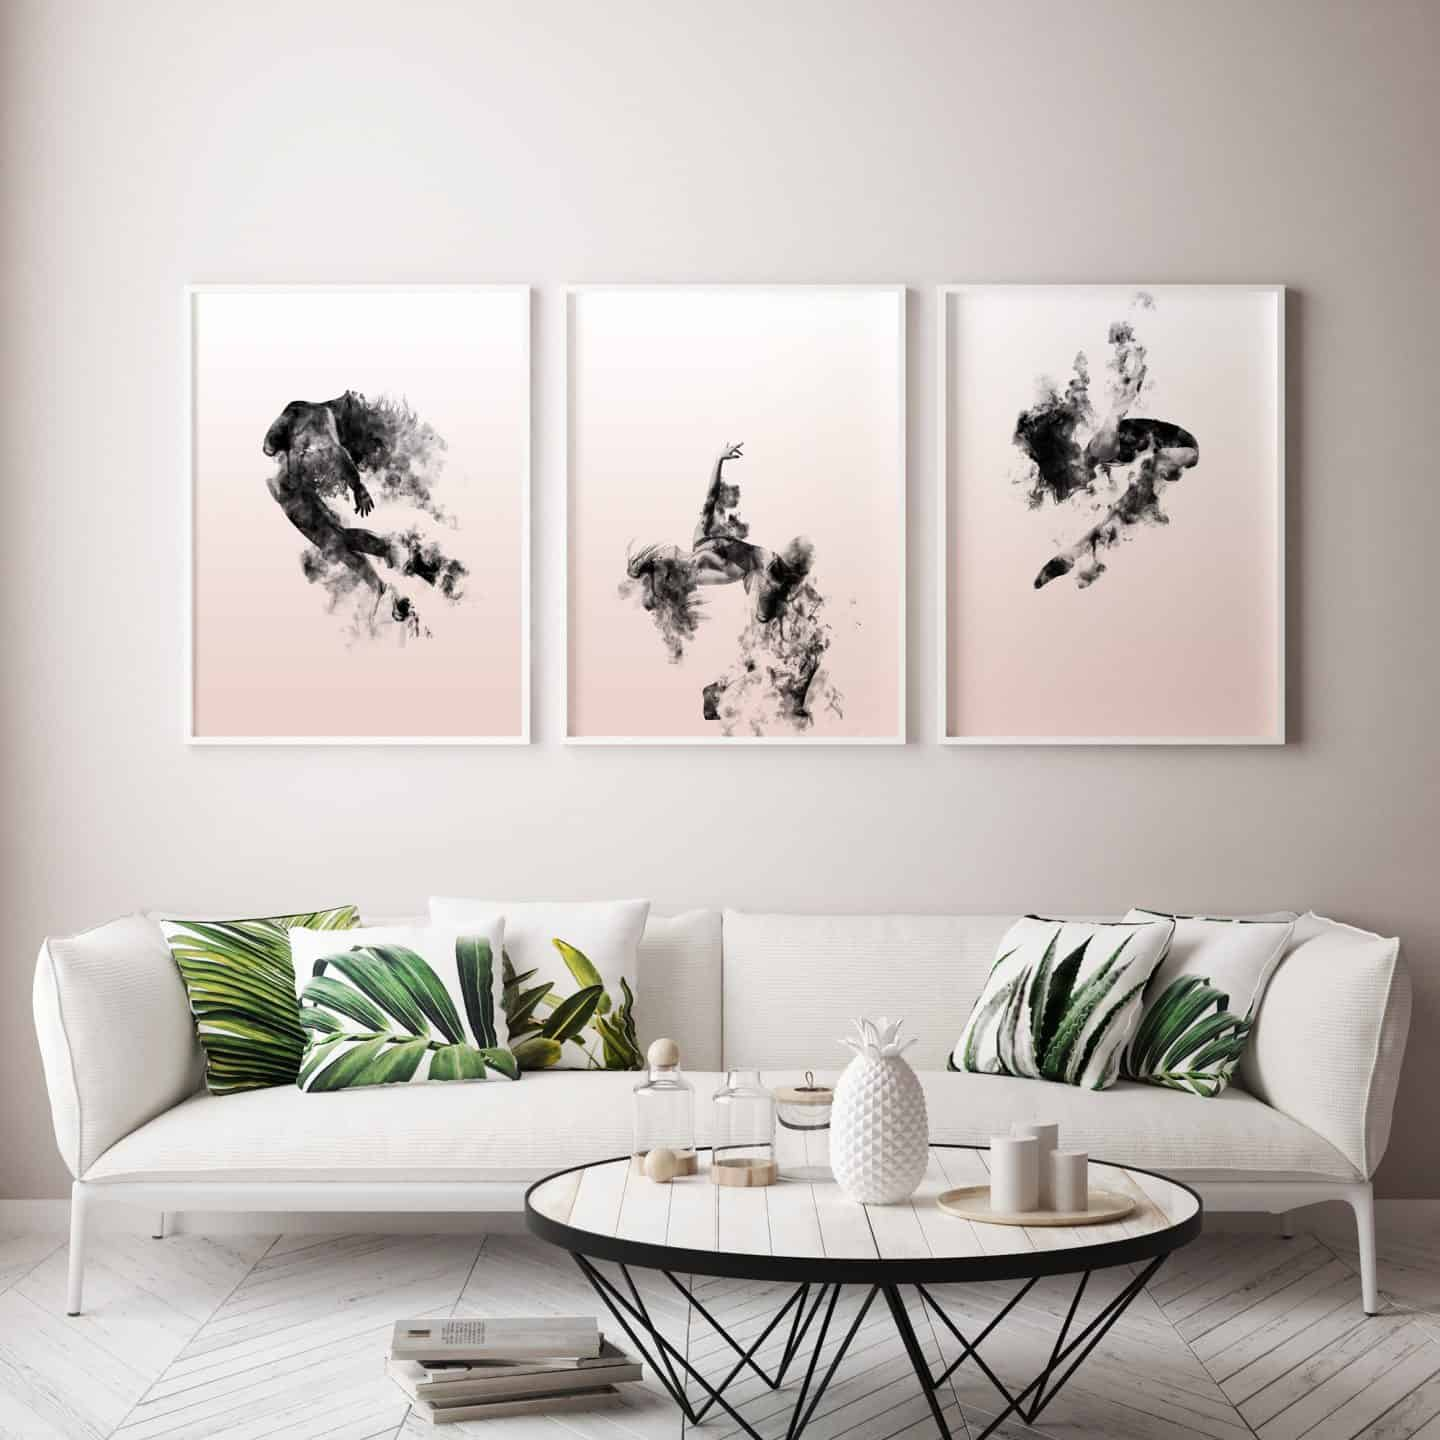 Ink and Drop-affordable artwork portraying 3 dancers